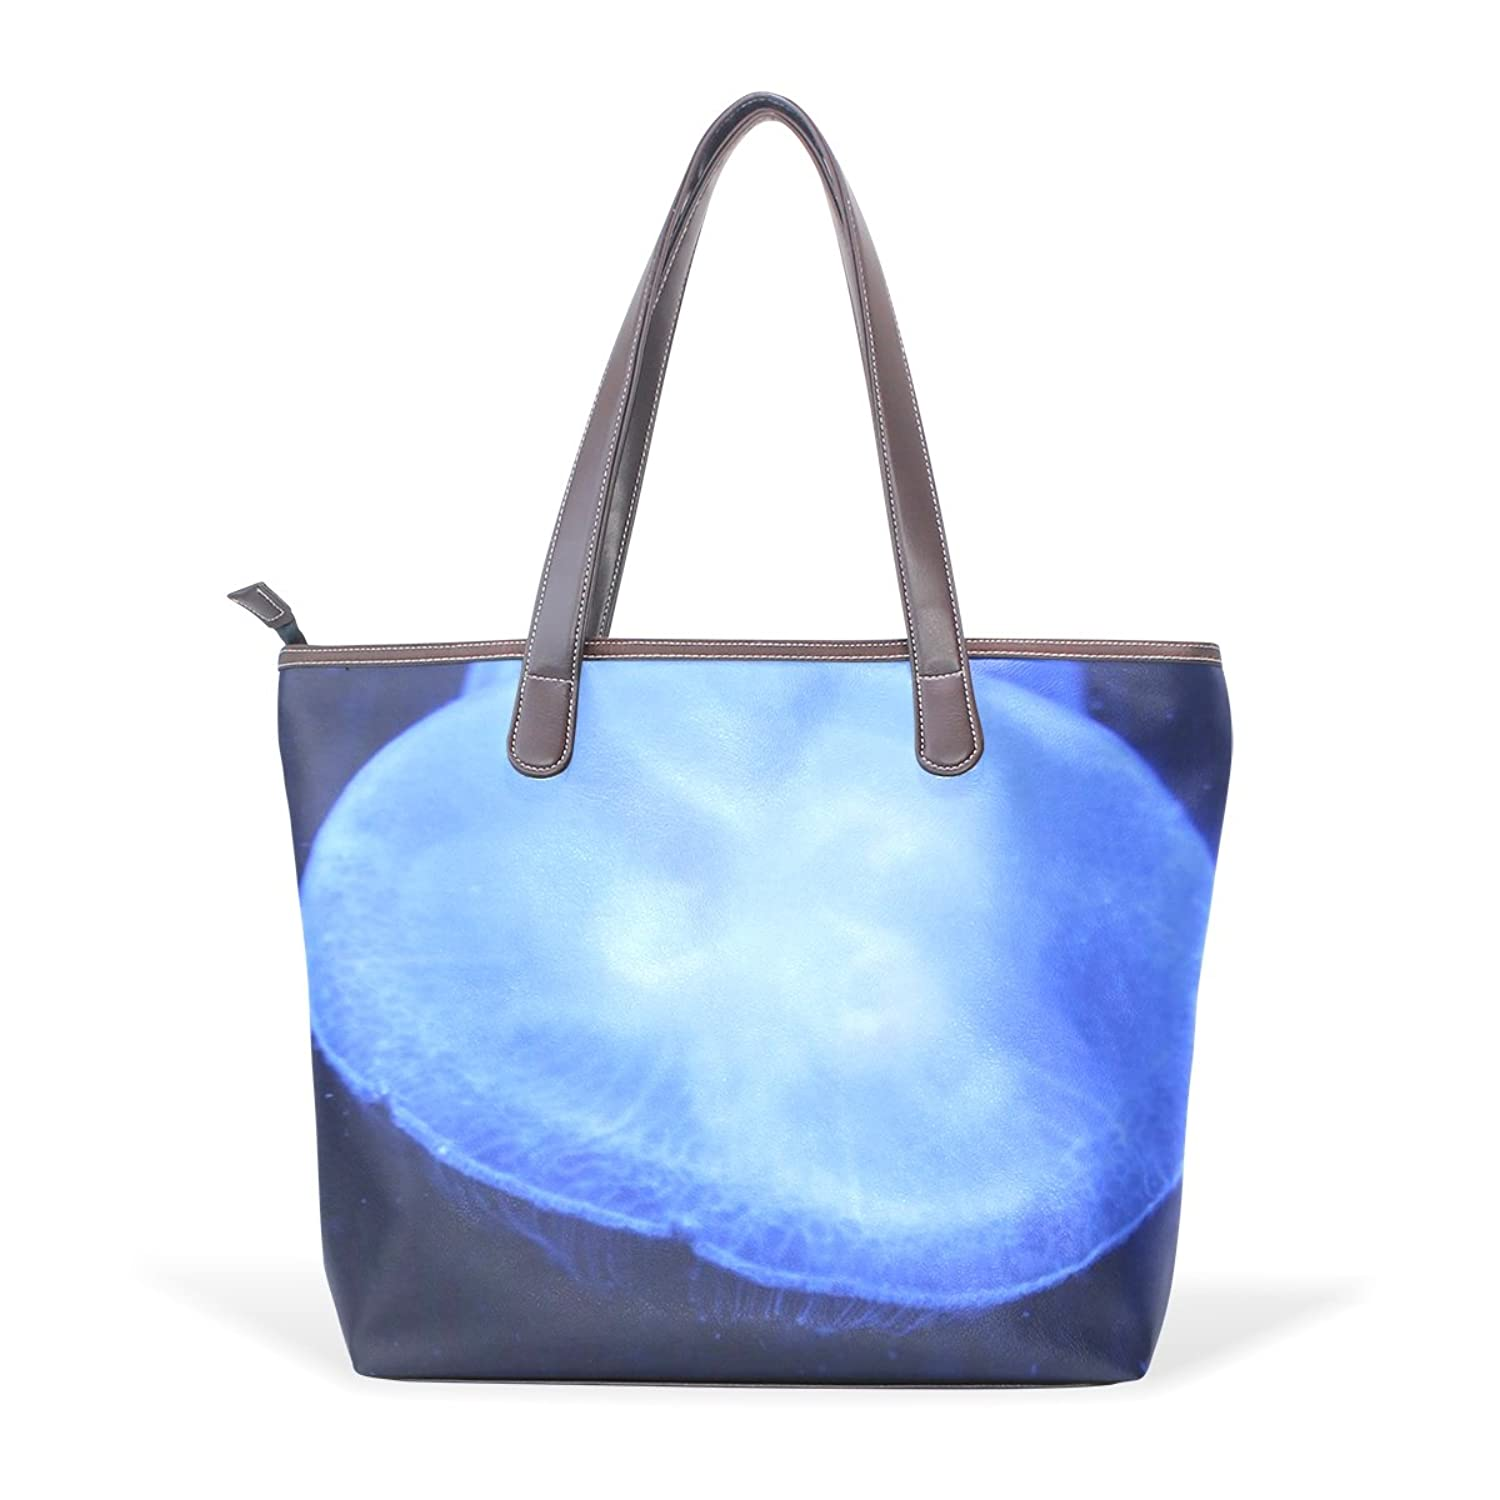 CCBHGY Women's Transparent Jellyfish pattern Leather Handbag Zipper Shoulder Bag Tote Bag